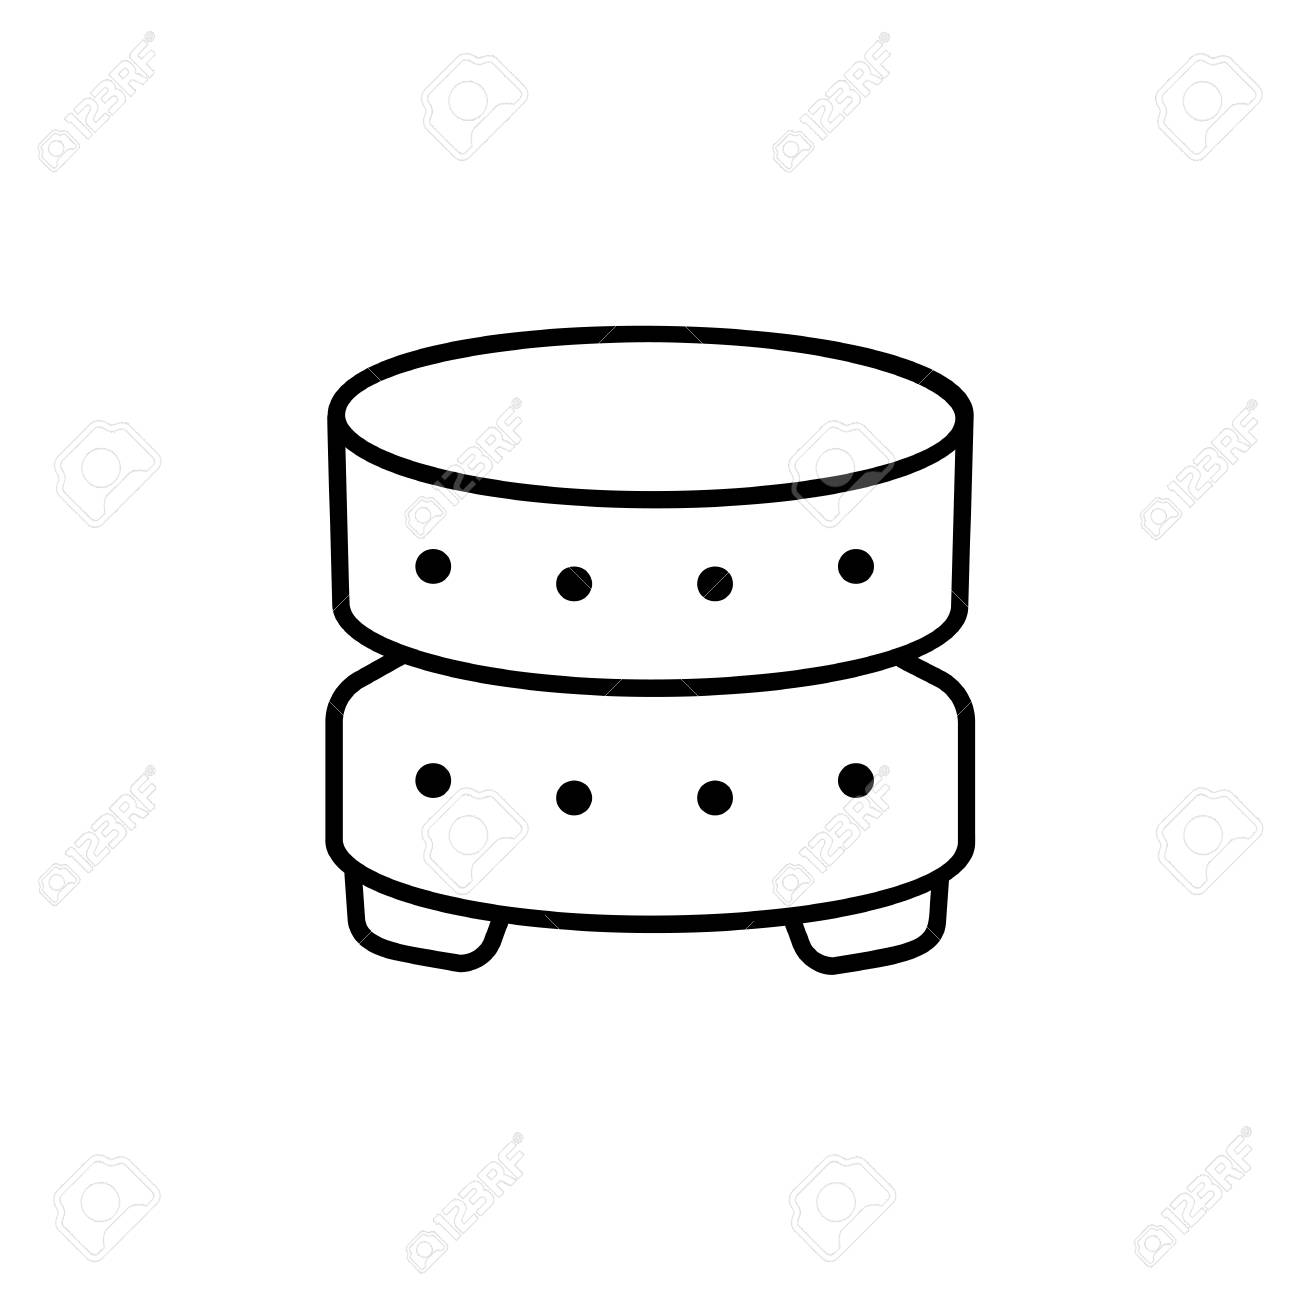 Wondrous Black White Vector Illustration Of Round Leather Ottoman Pouf Gmtry Best Dining Table And Chair Ideas Images Gmtryco